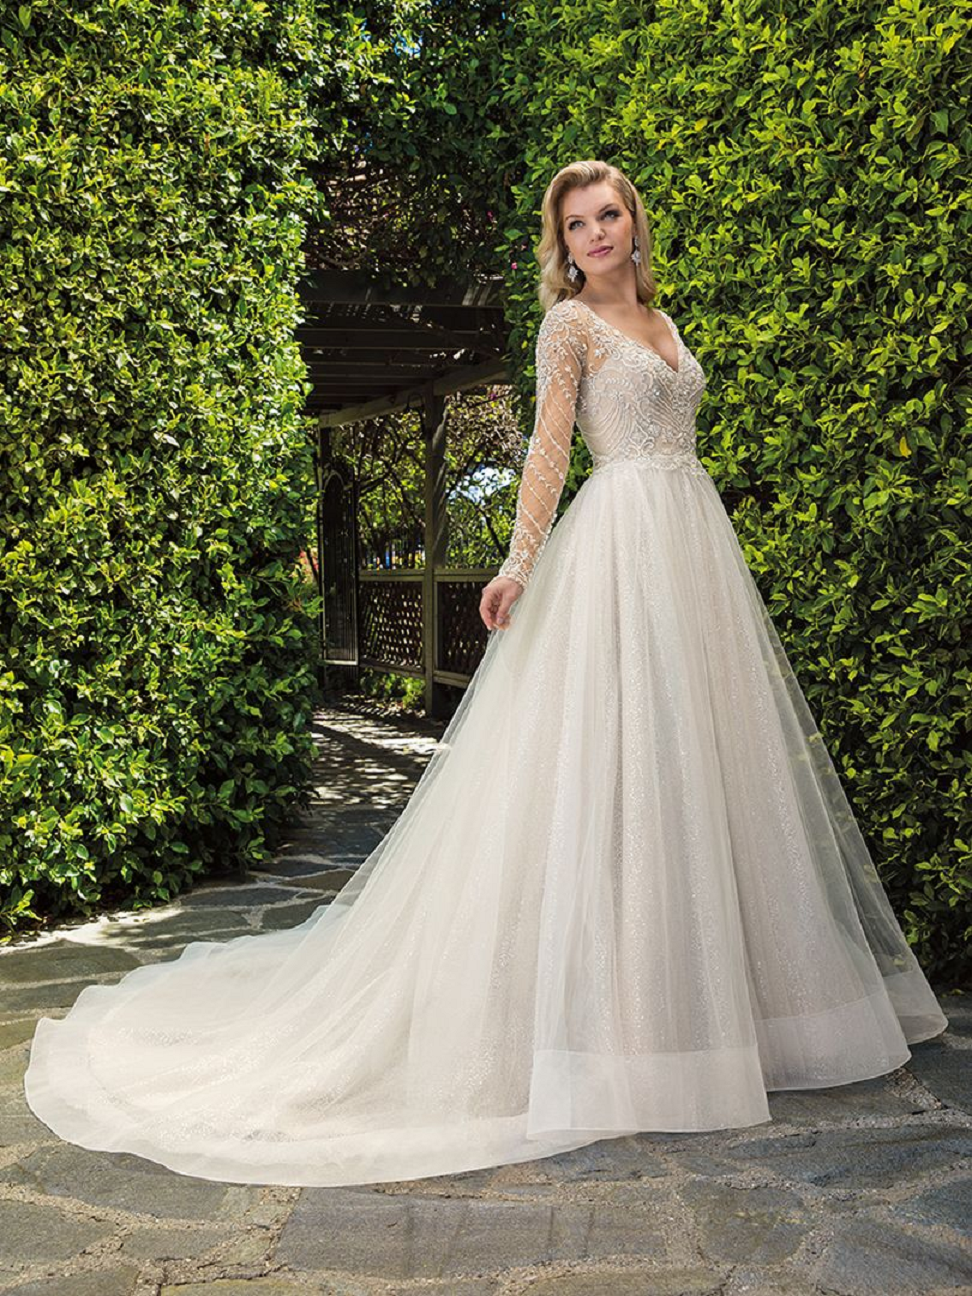 Long-Sleeve Sequined Tulle, Silver Beaded Bodice and Long Train Bridal Gown